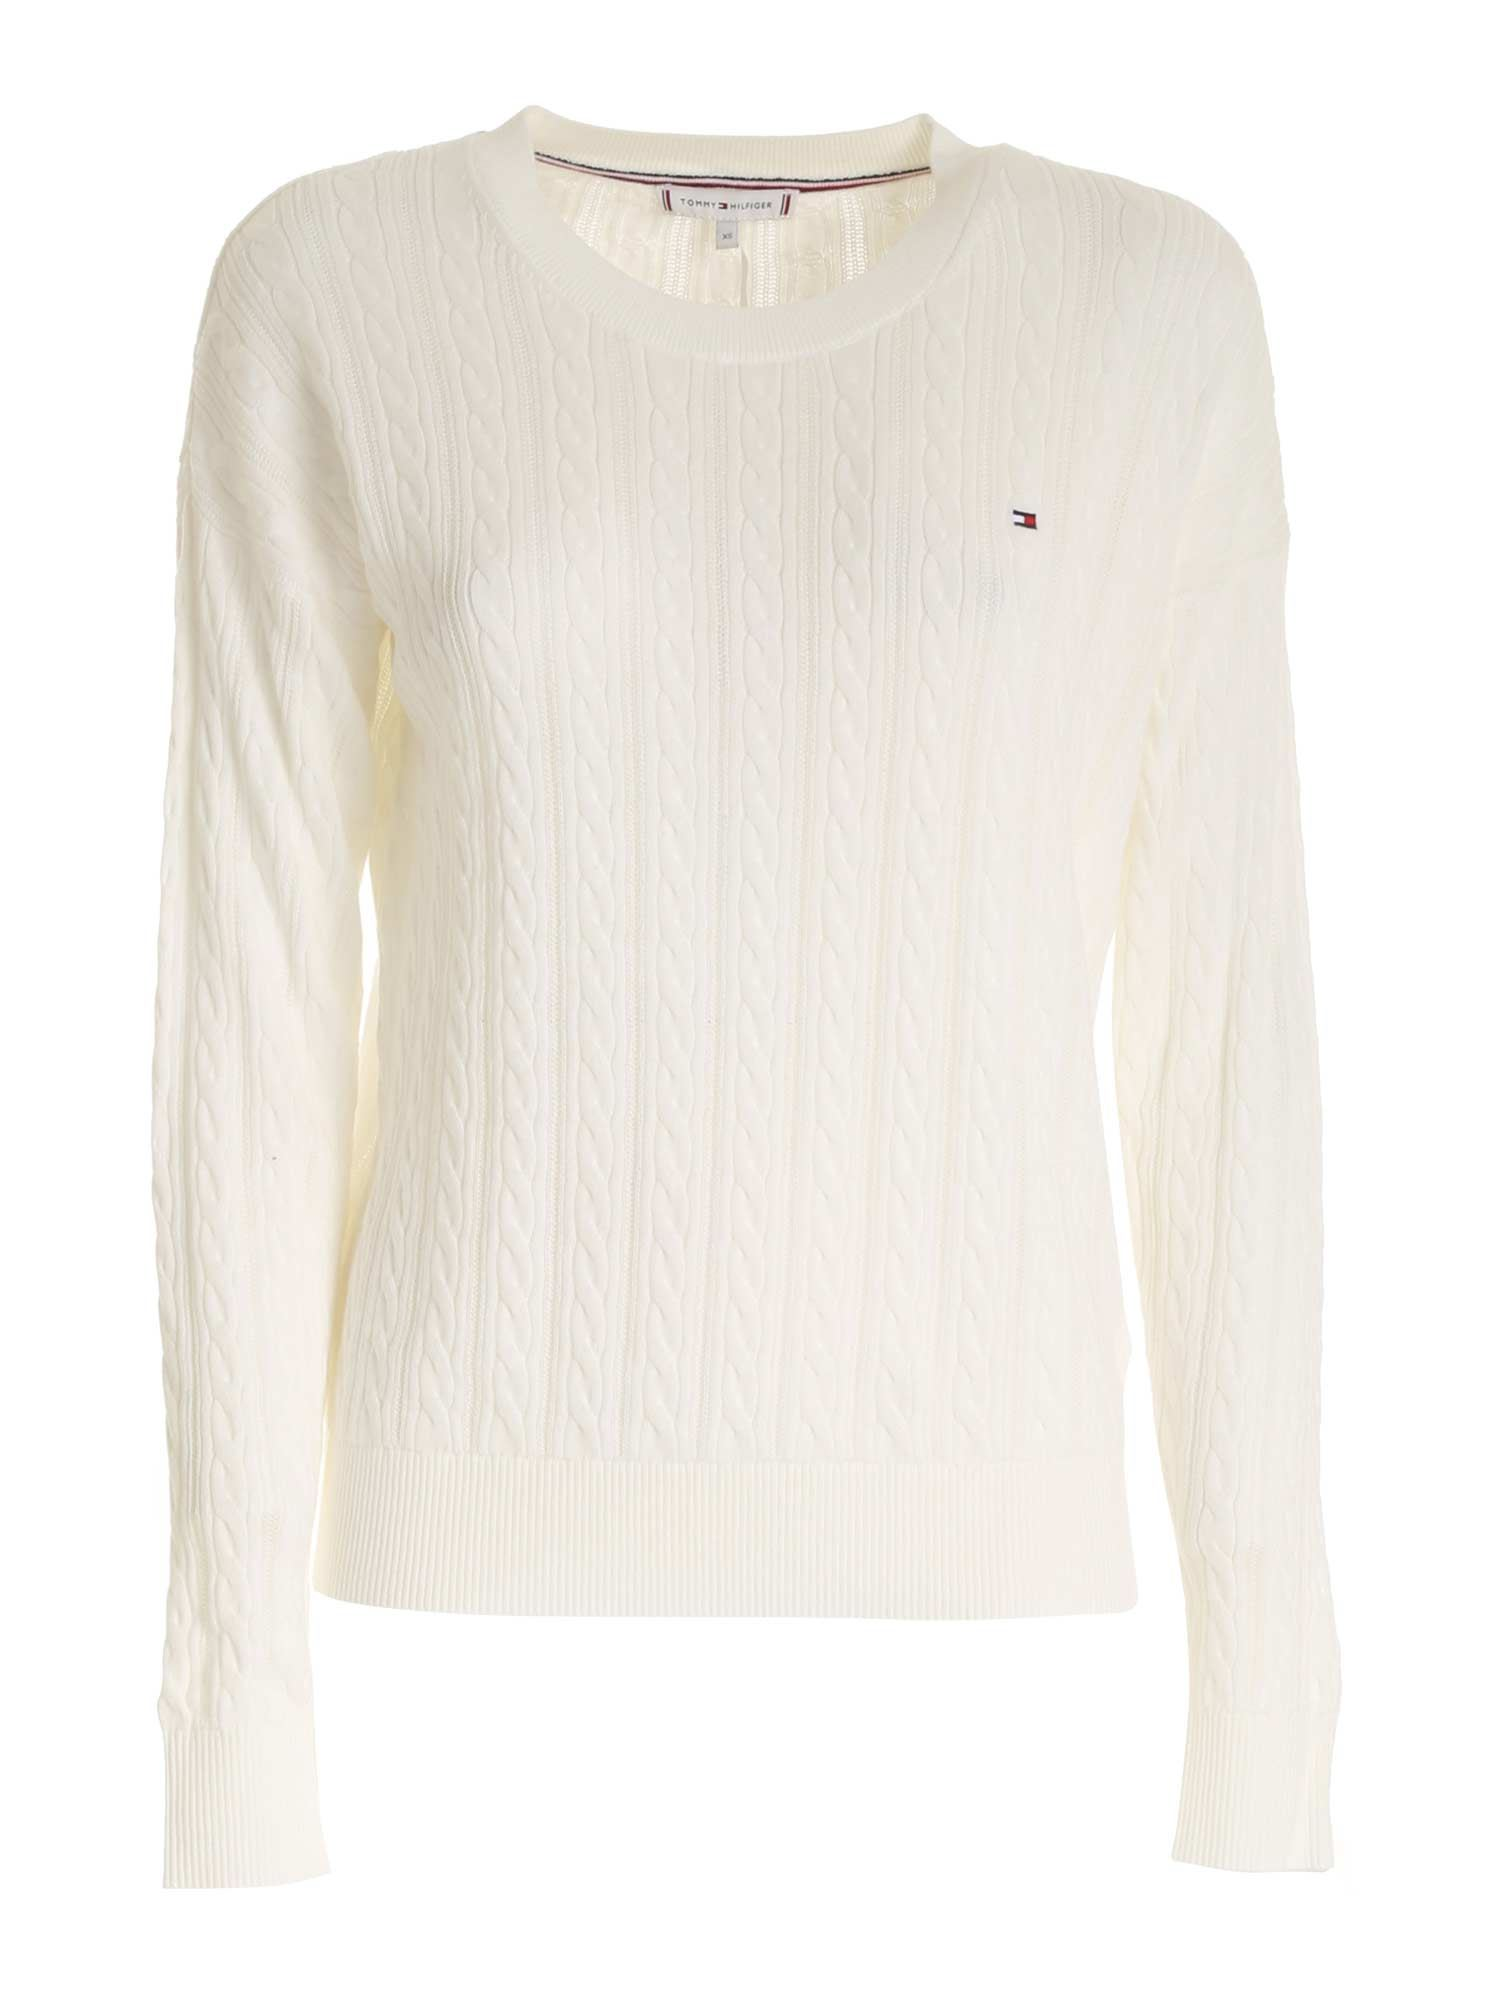 Tommy Hilfiger LOGO EMBROIDERY SWEATER IN WHITE